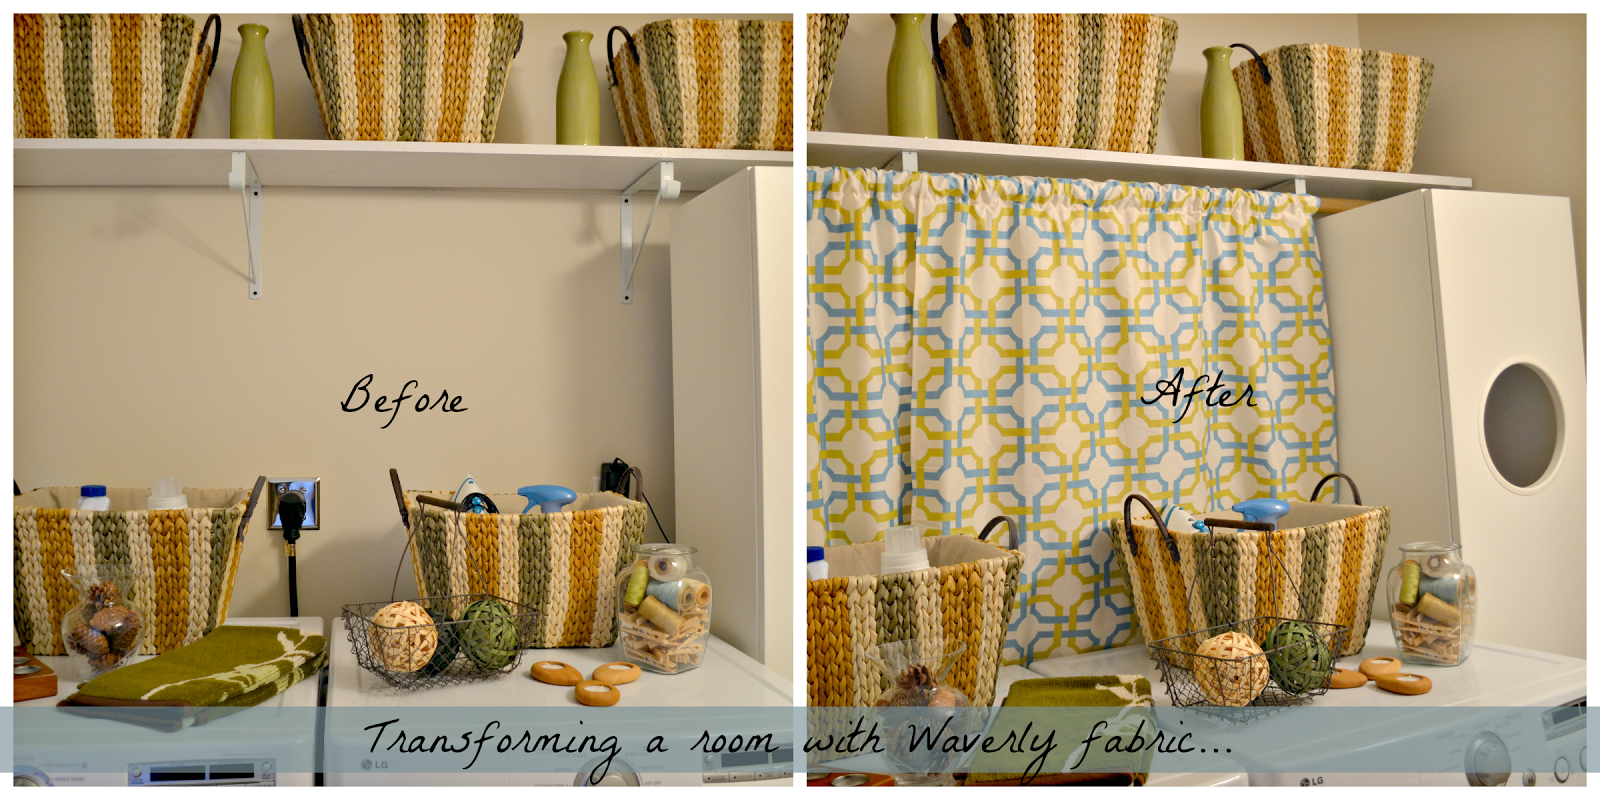 Superior Laundry Room Fabric Part - 11: I Have Been Working Little By Little To Transform My Laundry Room, And This  Fabric Made Another Lovely Addition.